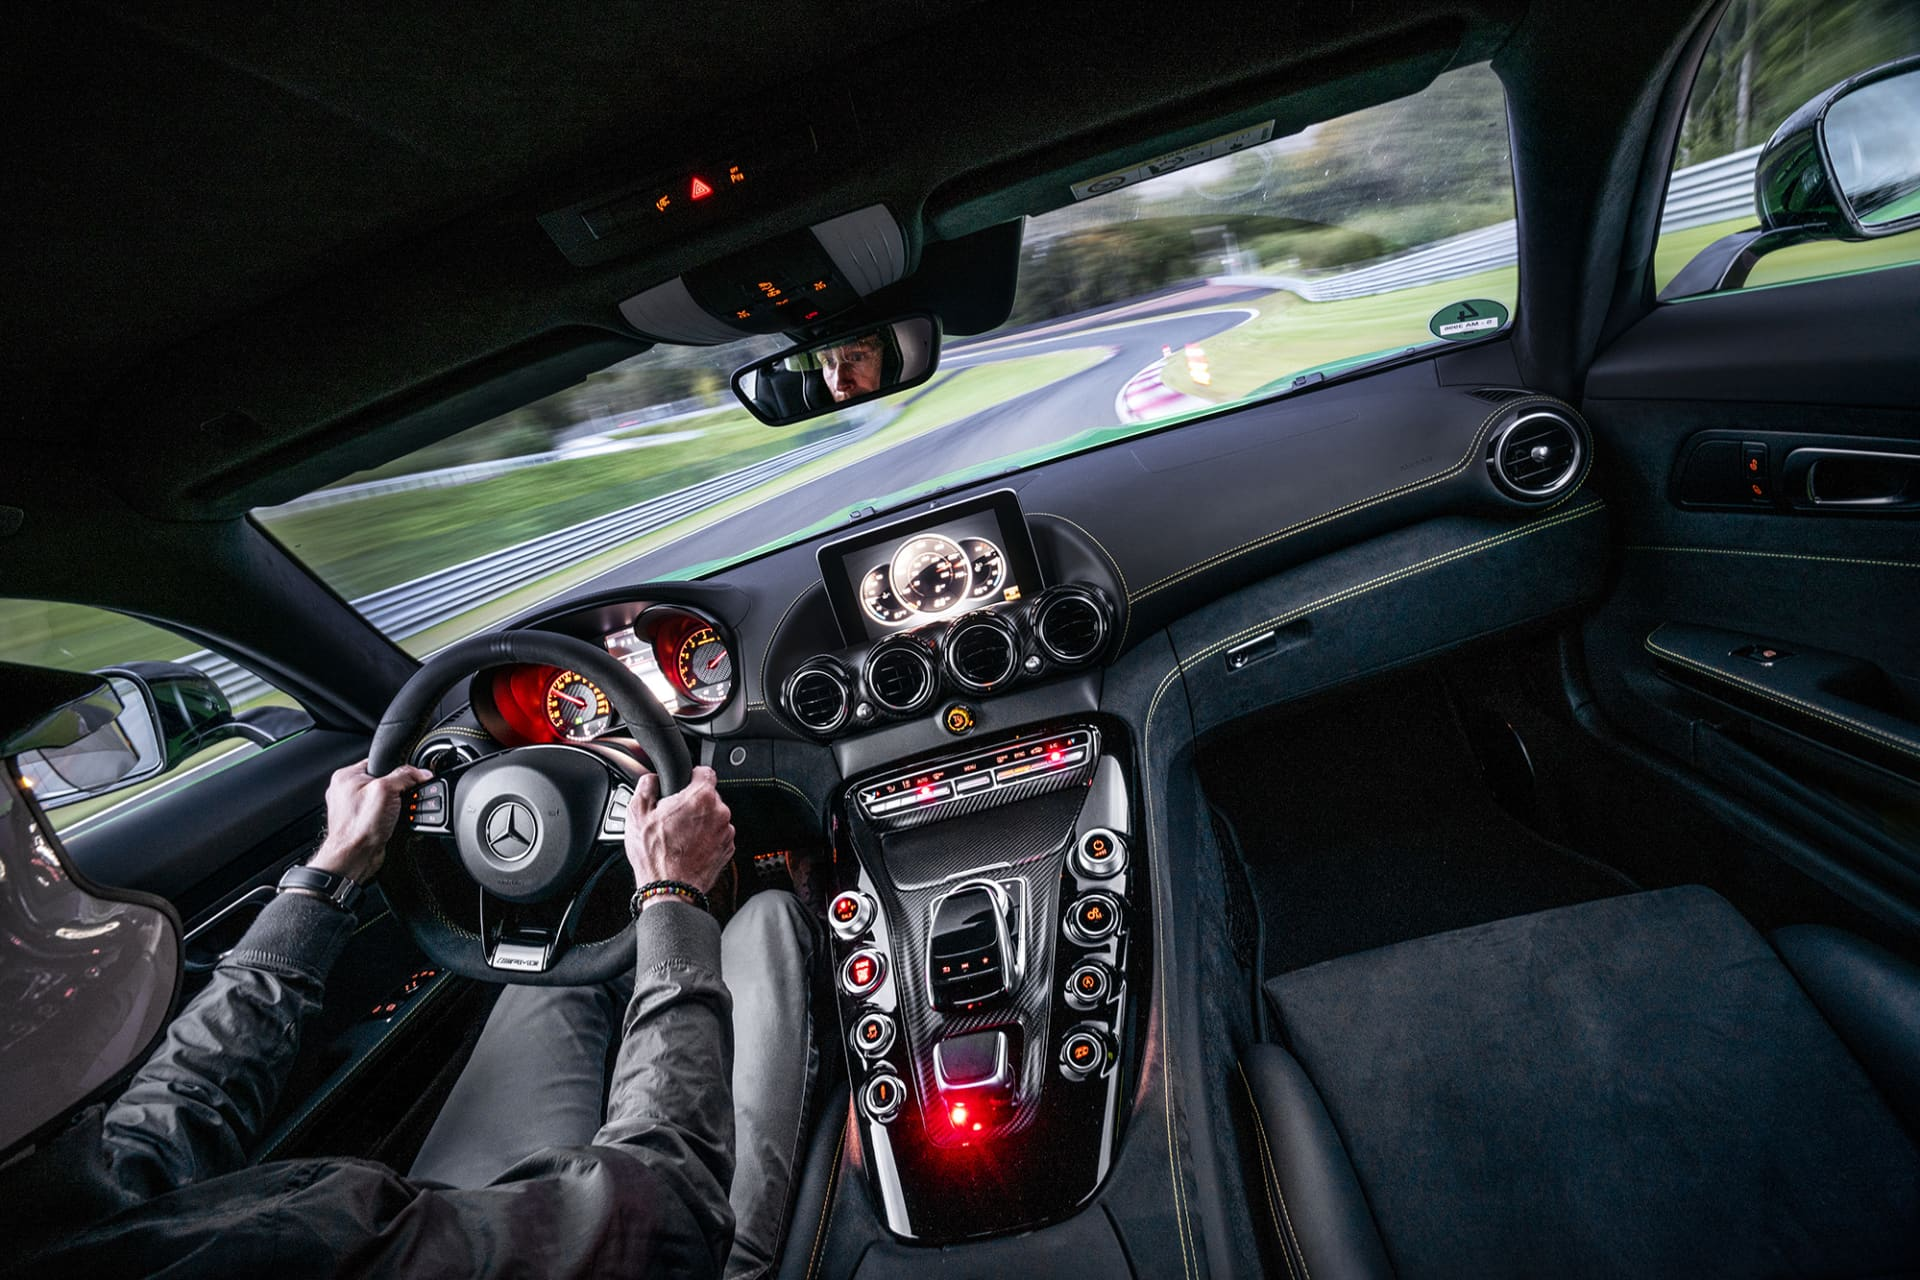 The Bilster Mountain course is incredibly challenging but also great fun.With an instructor in front that shows track selection and braking points, it becomes even more fun.